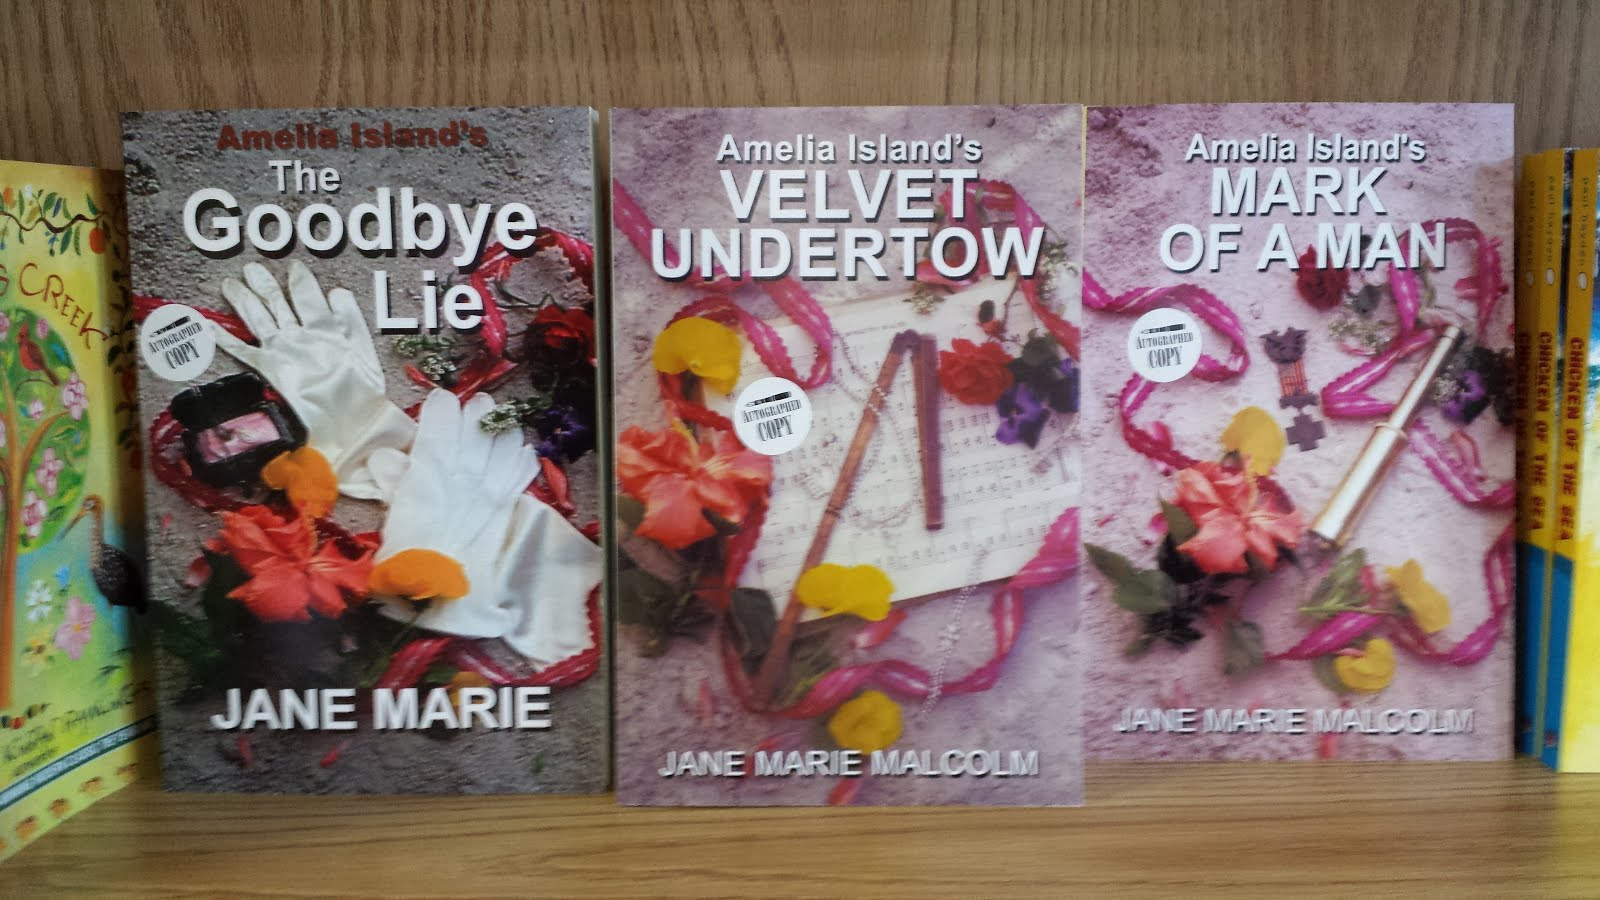 read THE GOODBYE LIE Trilogy - a tangle of FAMILY devotion, jarring SUSPENSE and desperate PASSION